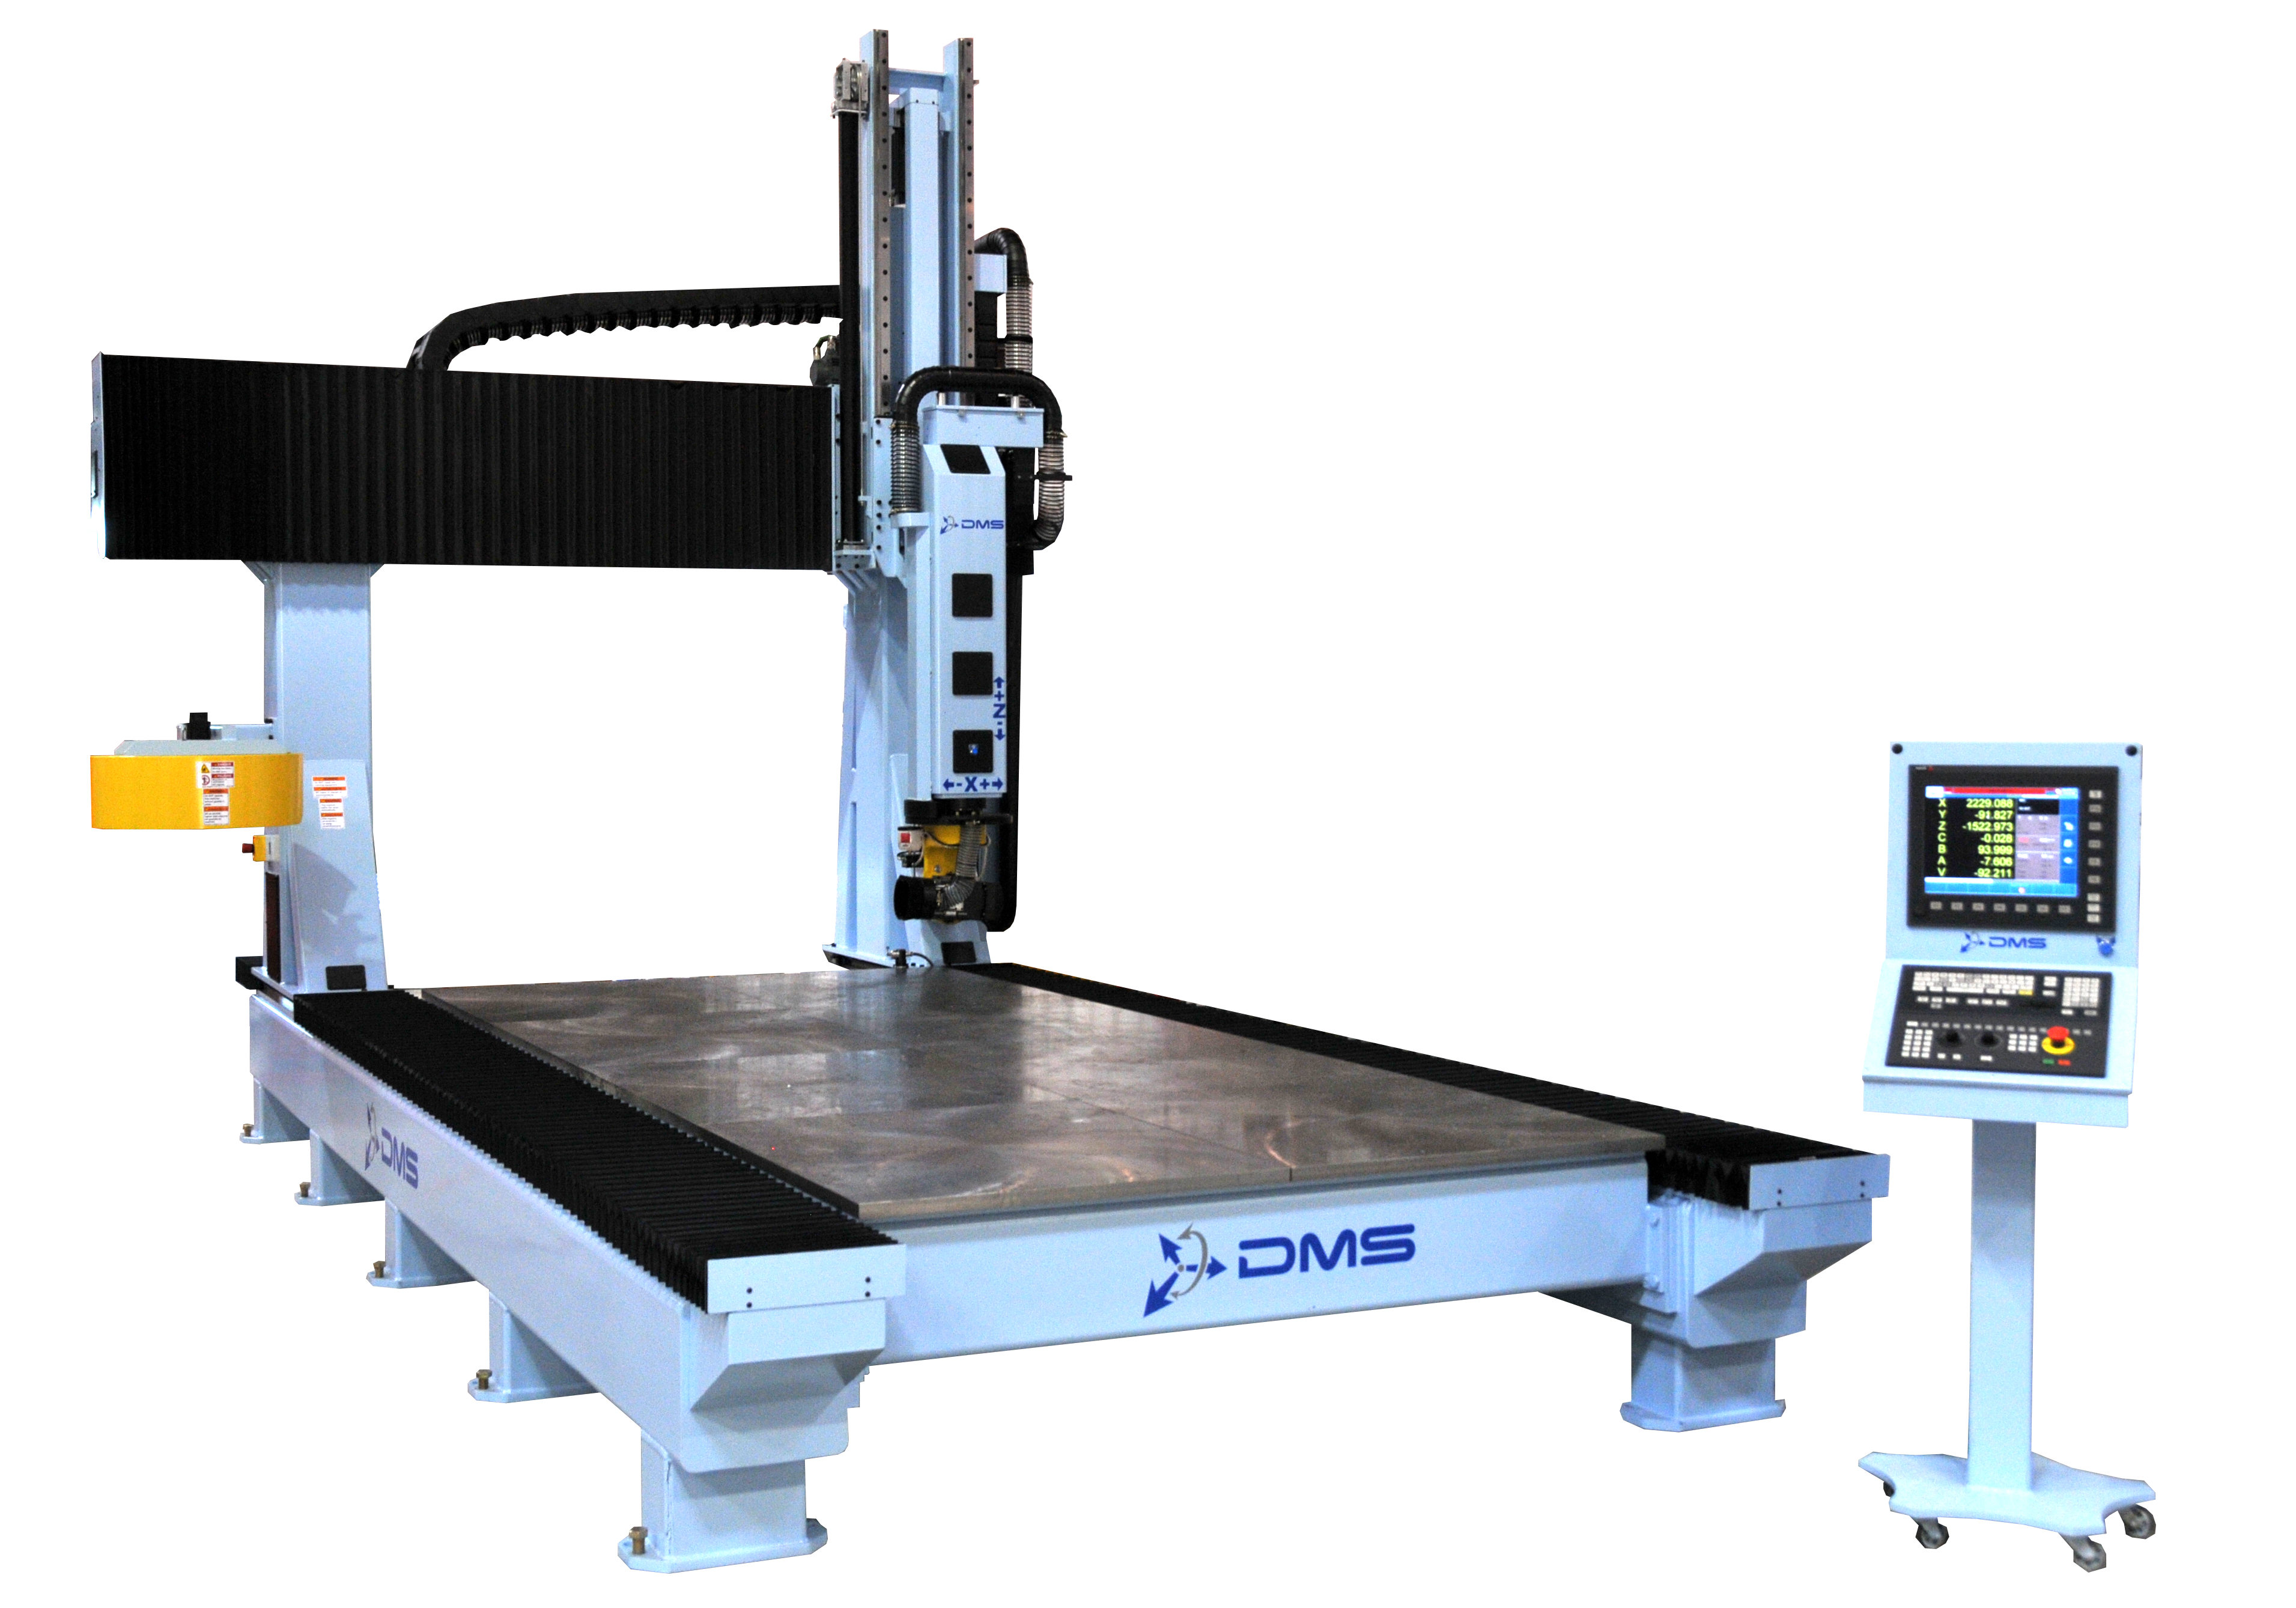 2014 Dms D3 3 Axis Cnc Router Announced By Diversified